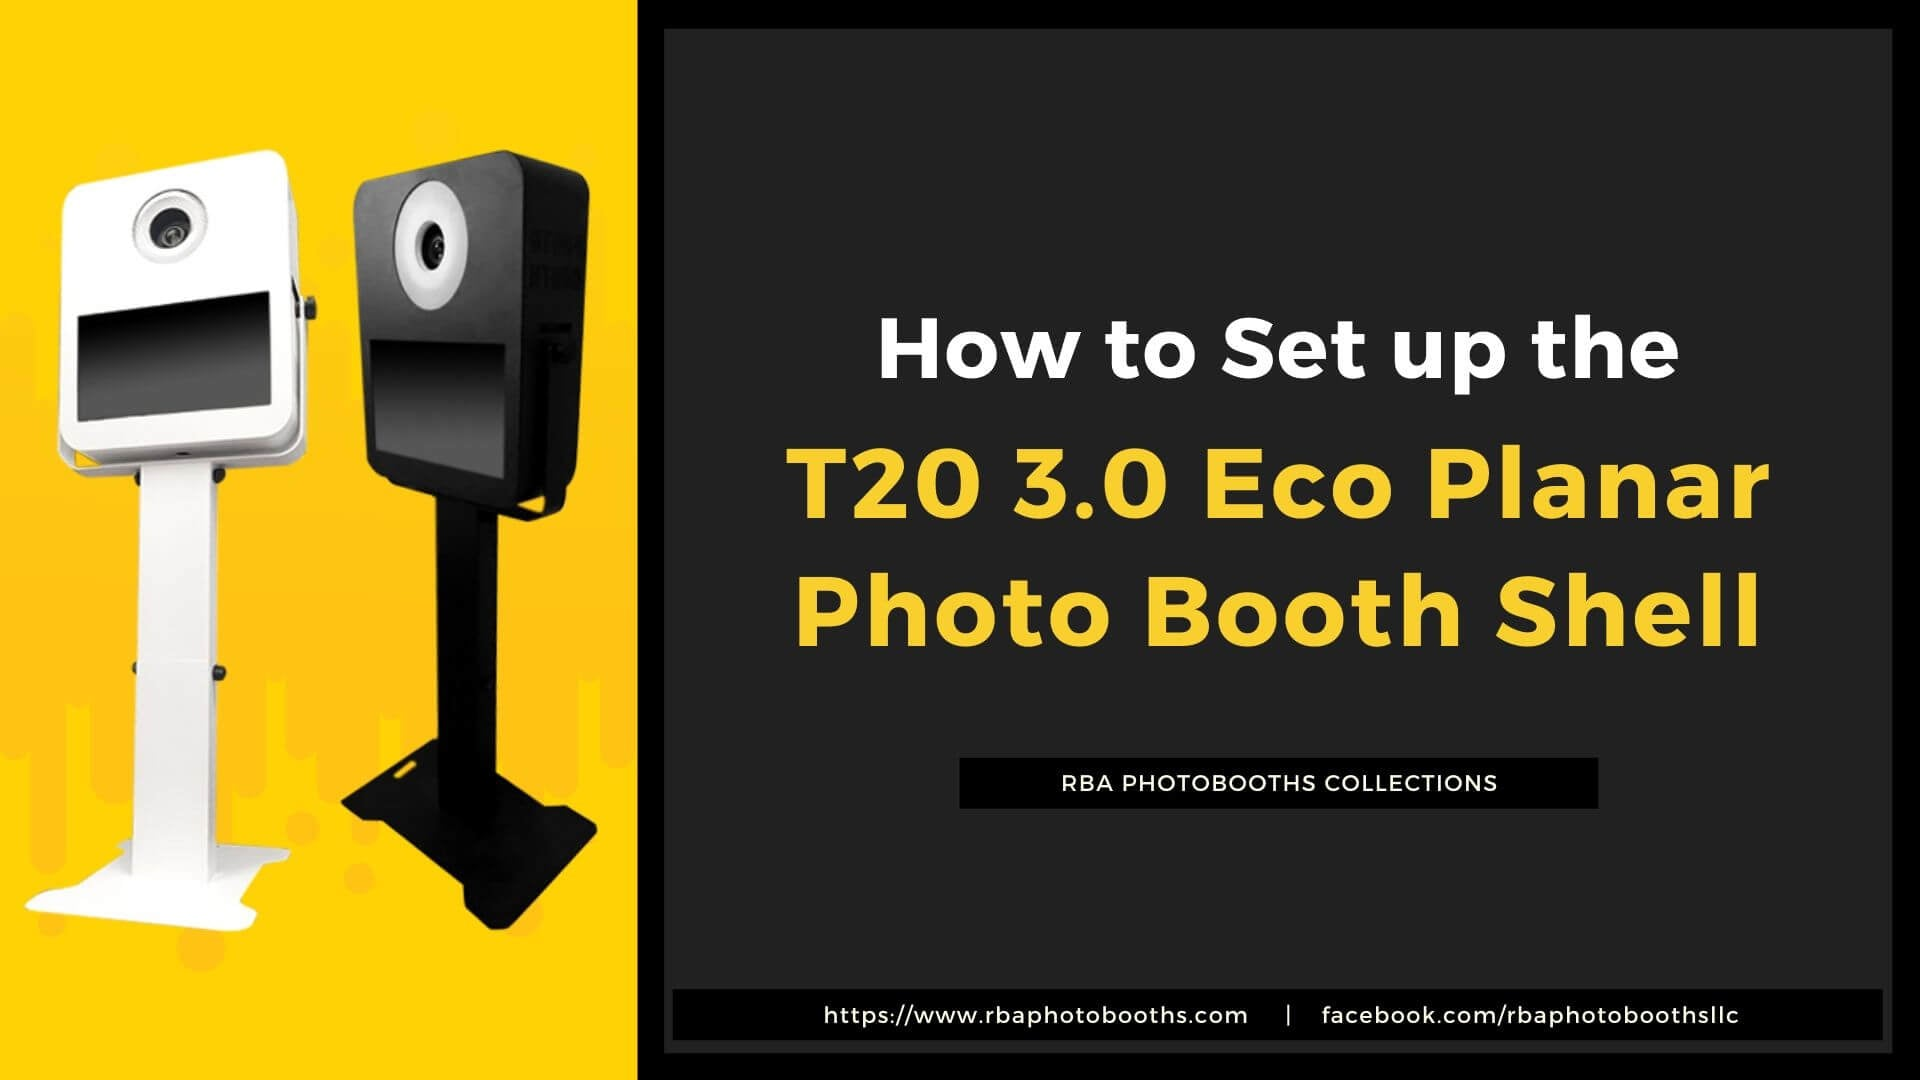 How to Install or Setup the T20 3.0 Eco Planar Photo Booth Shell